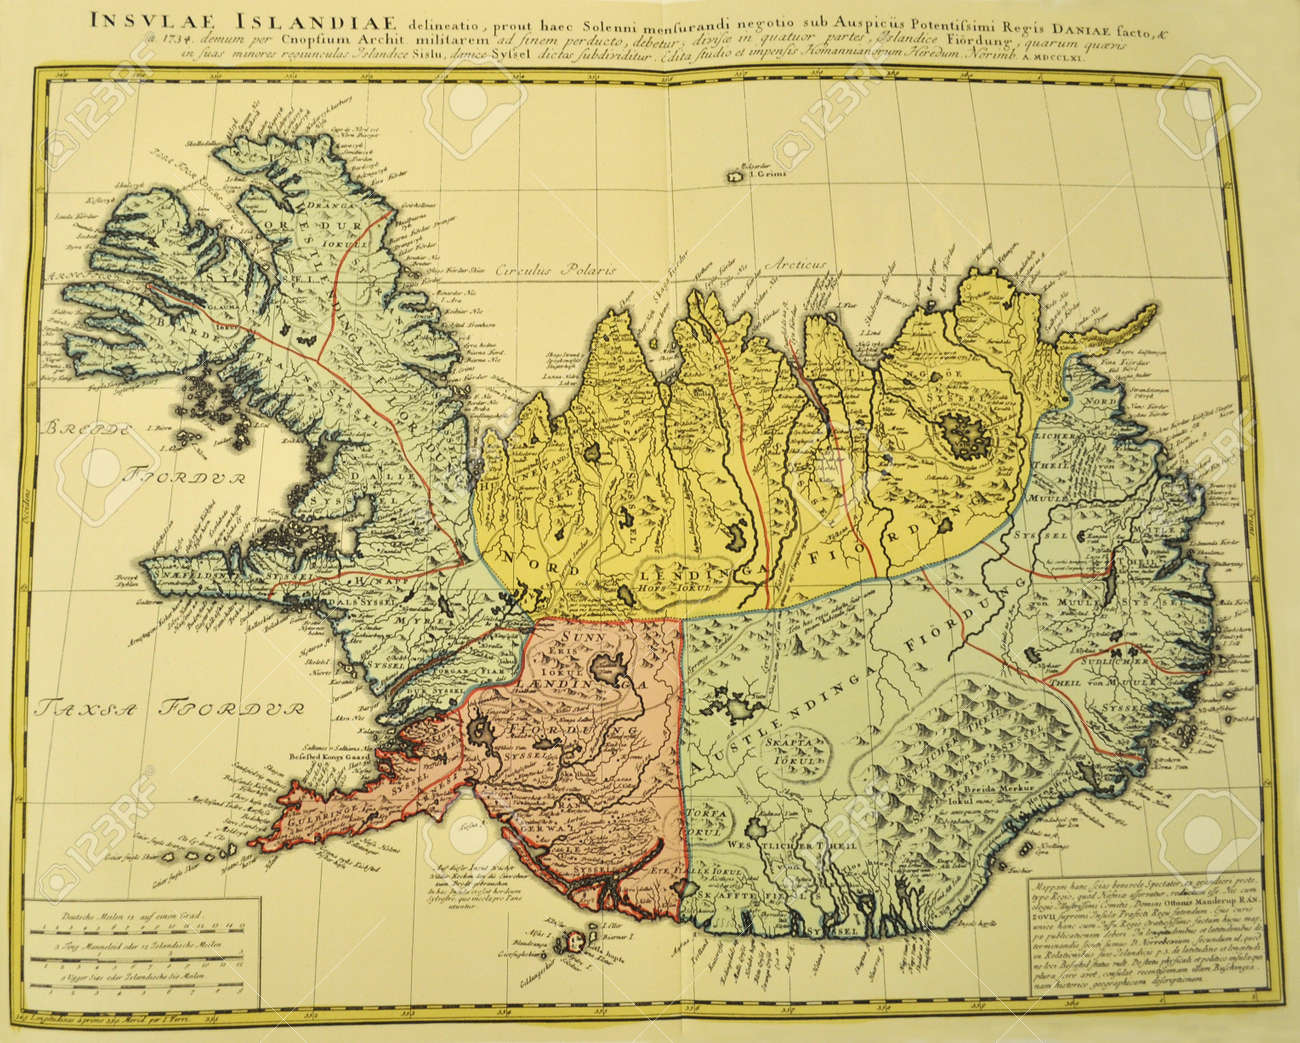 Old Map Of Iceland Iceland Old Map Stock Photo, Picture And Royalty Free Image. Image